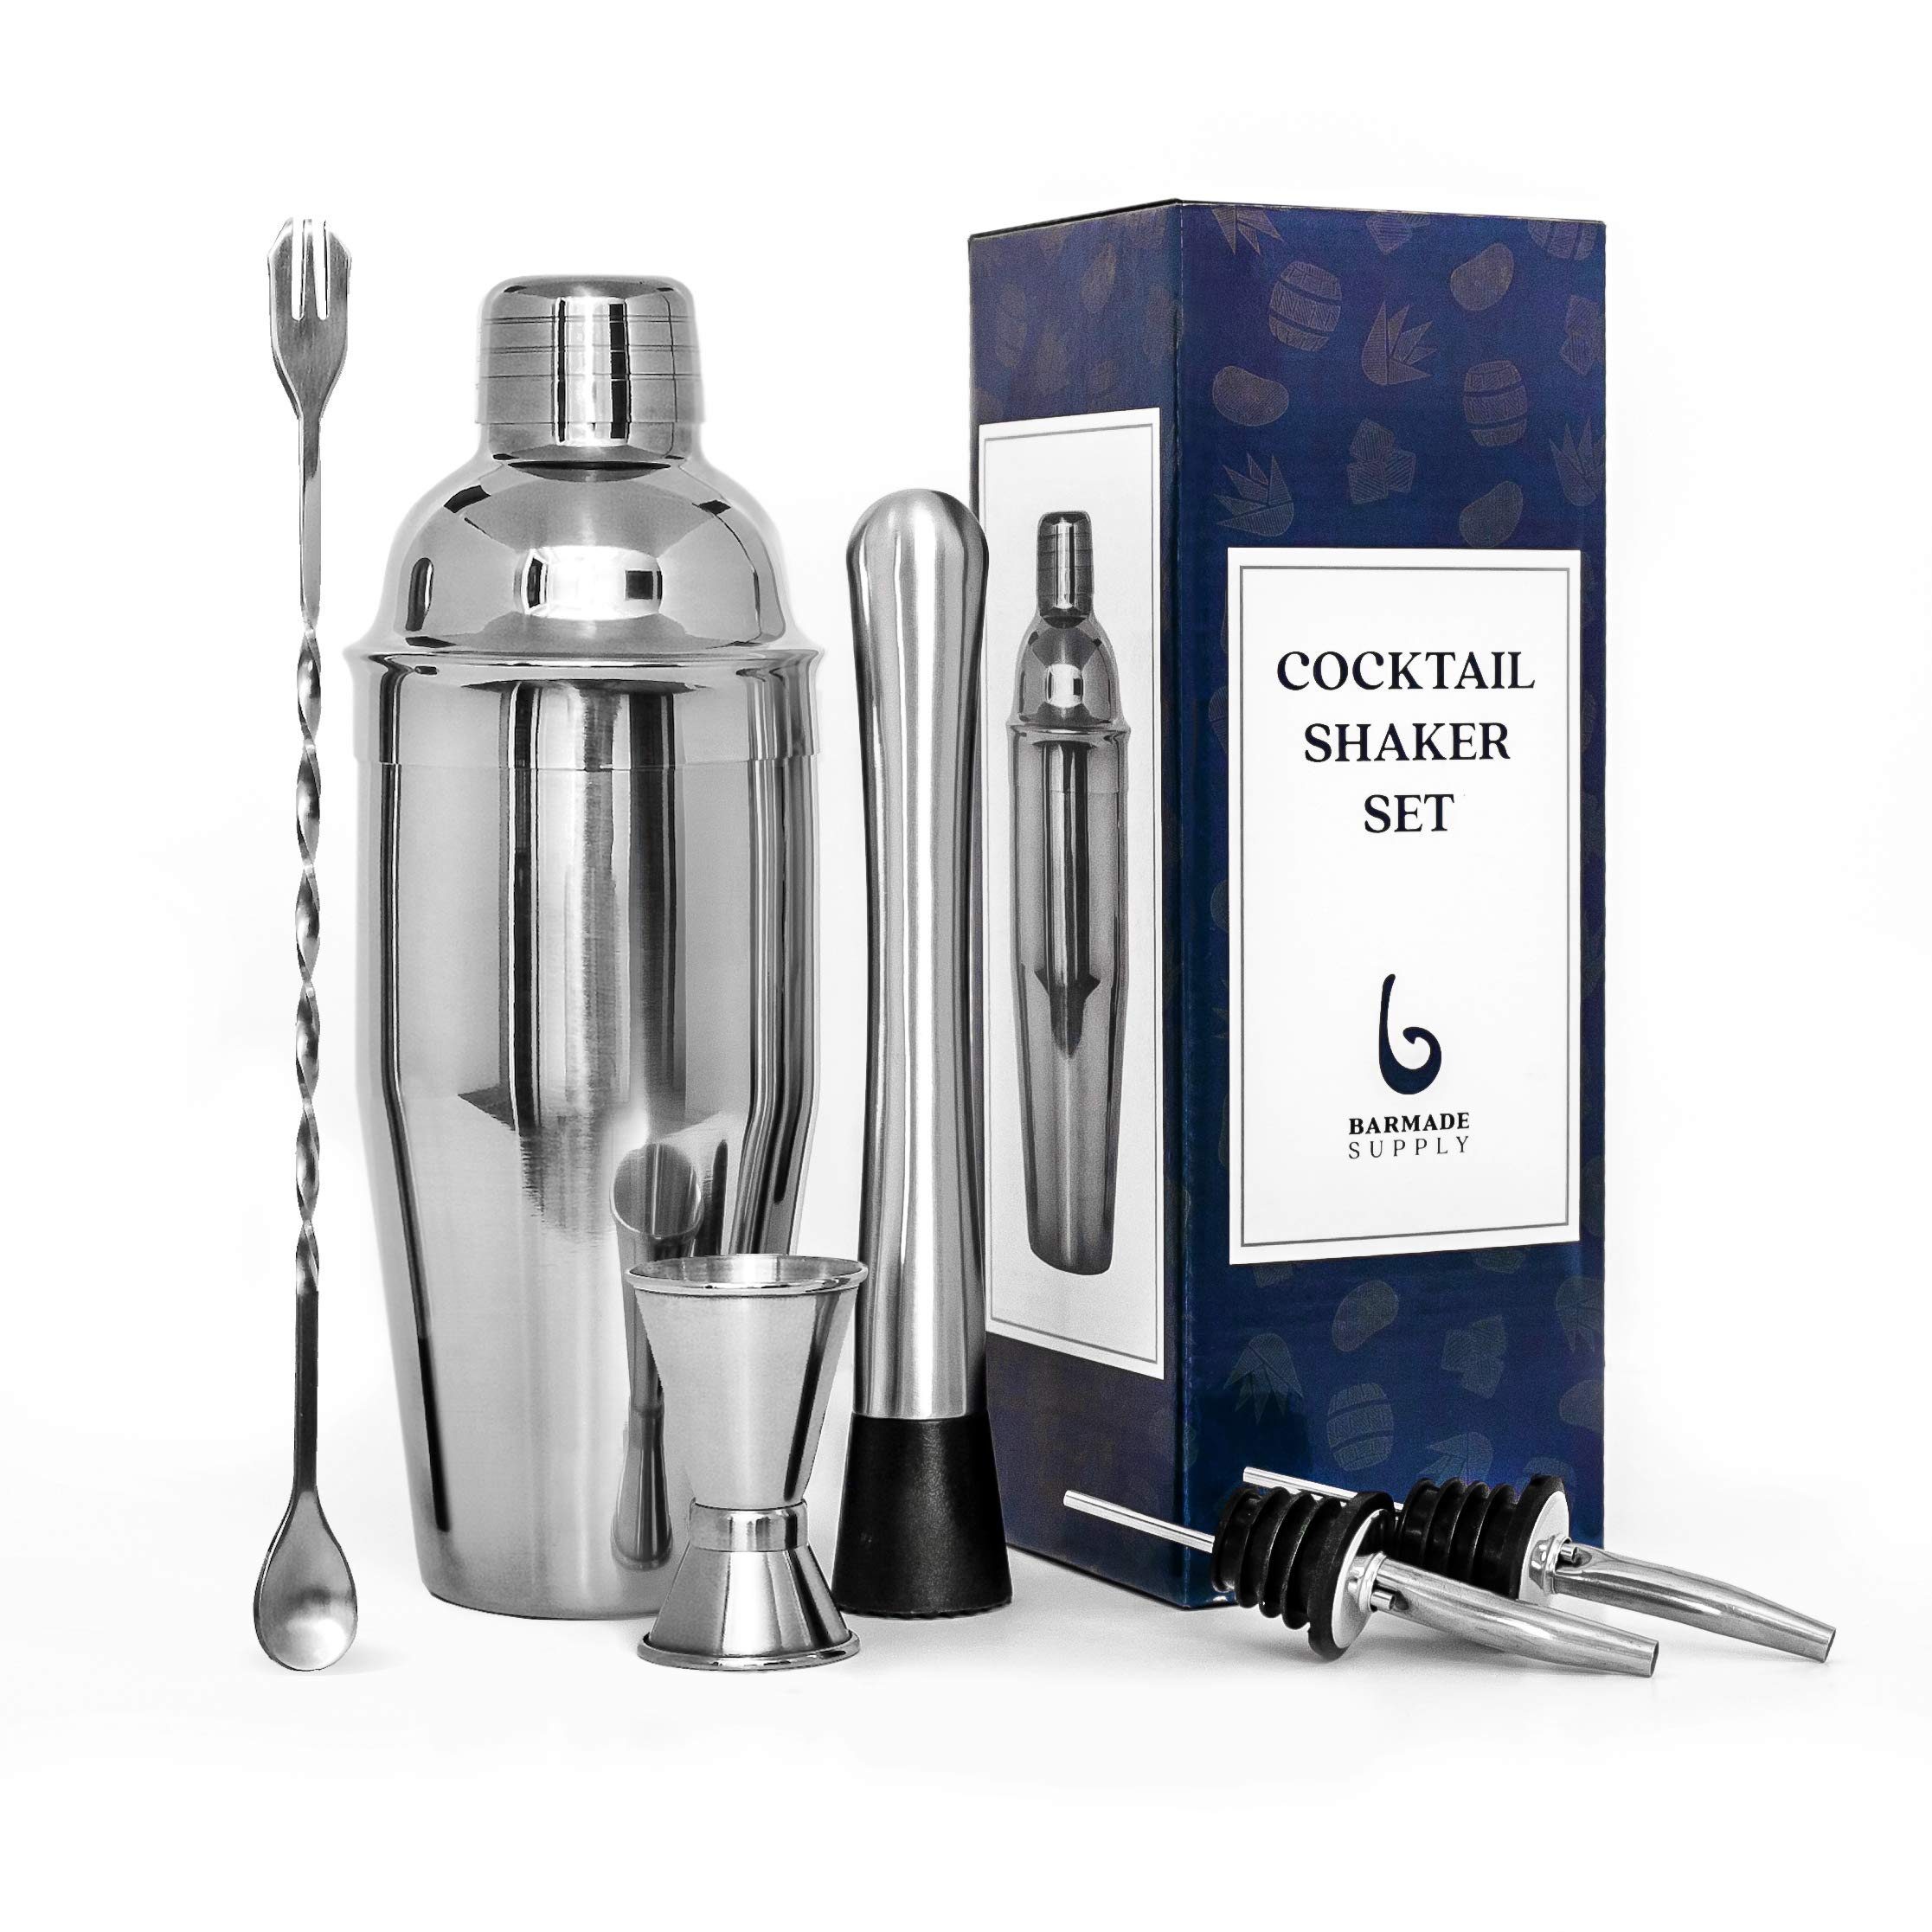 Cocktail Shaker Set by Barmade Supply - 24 Oz stainless steel shaker with strainer, 10 Inch mixing spoon, Muddler, Double jigger, 2 Liquor pourers - Professional bar accessories kit - Unique gift by Barmade Supply